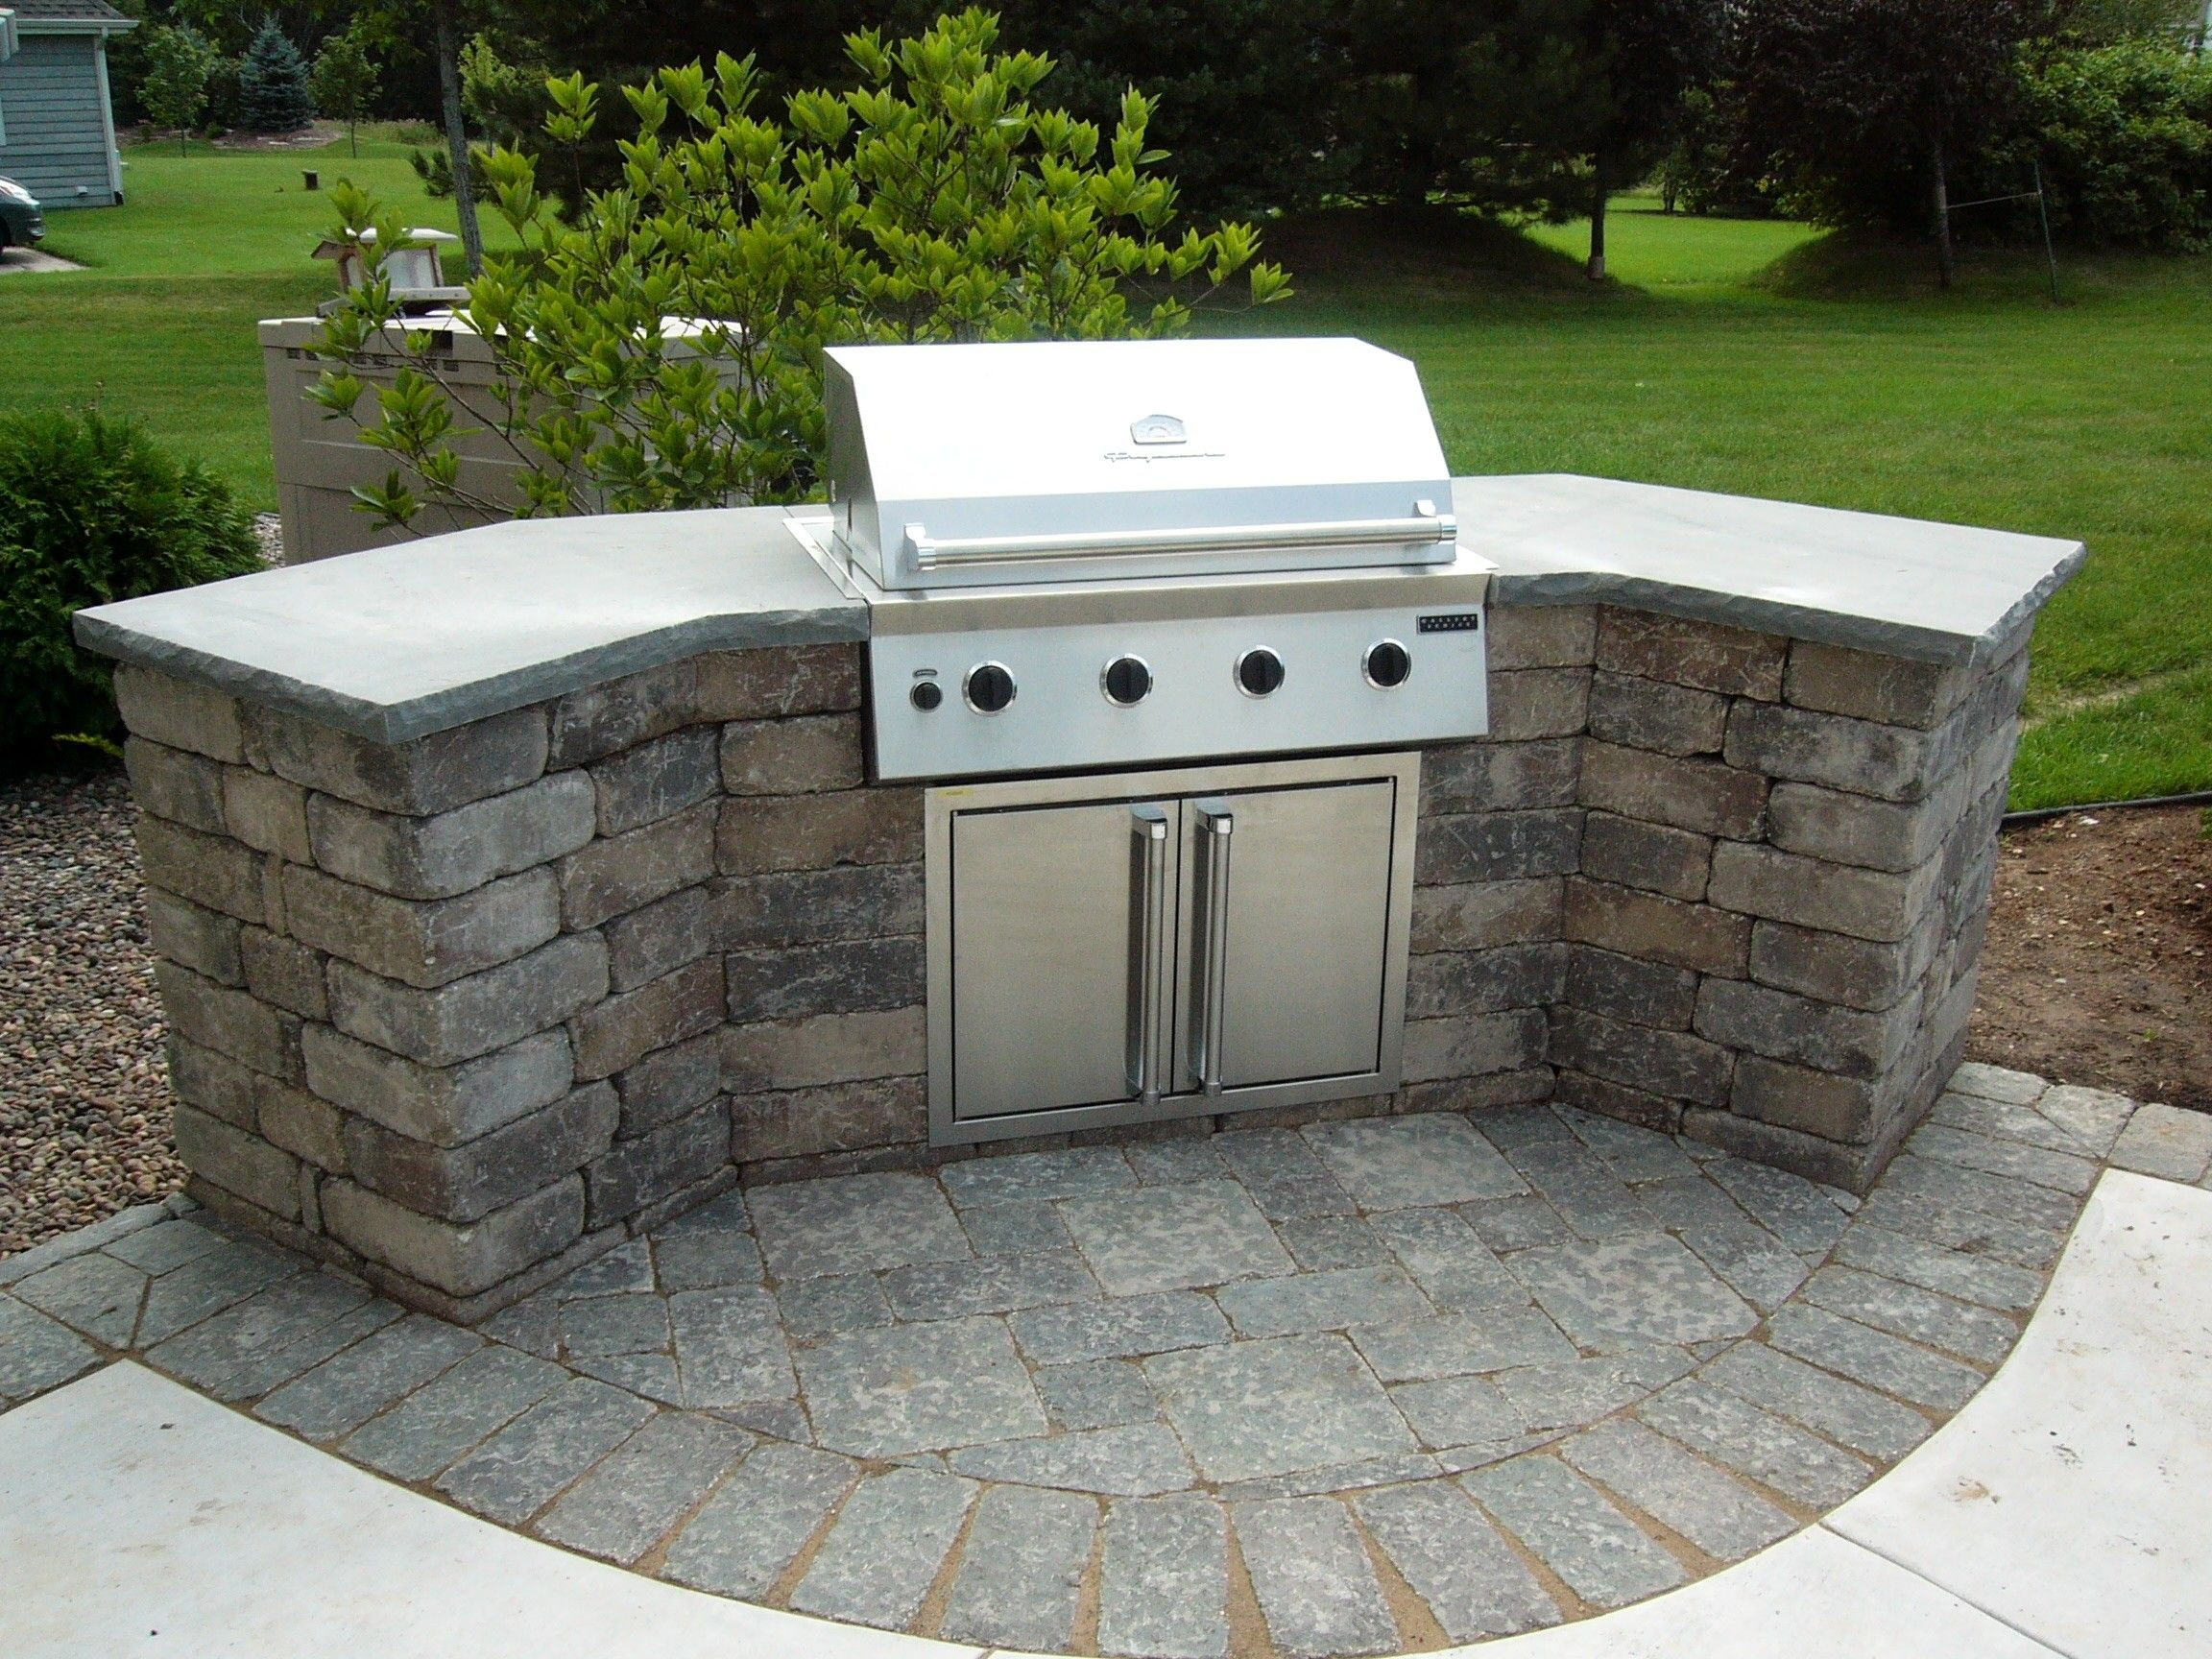 kitchen countertop material Curved Stone Prefab Kitchen Island With Gray Concrete Countertop And Barbeque Grill On Backyard Garden